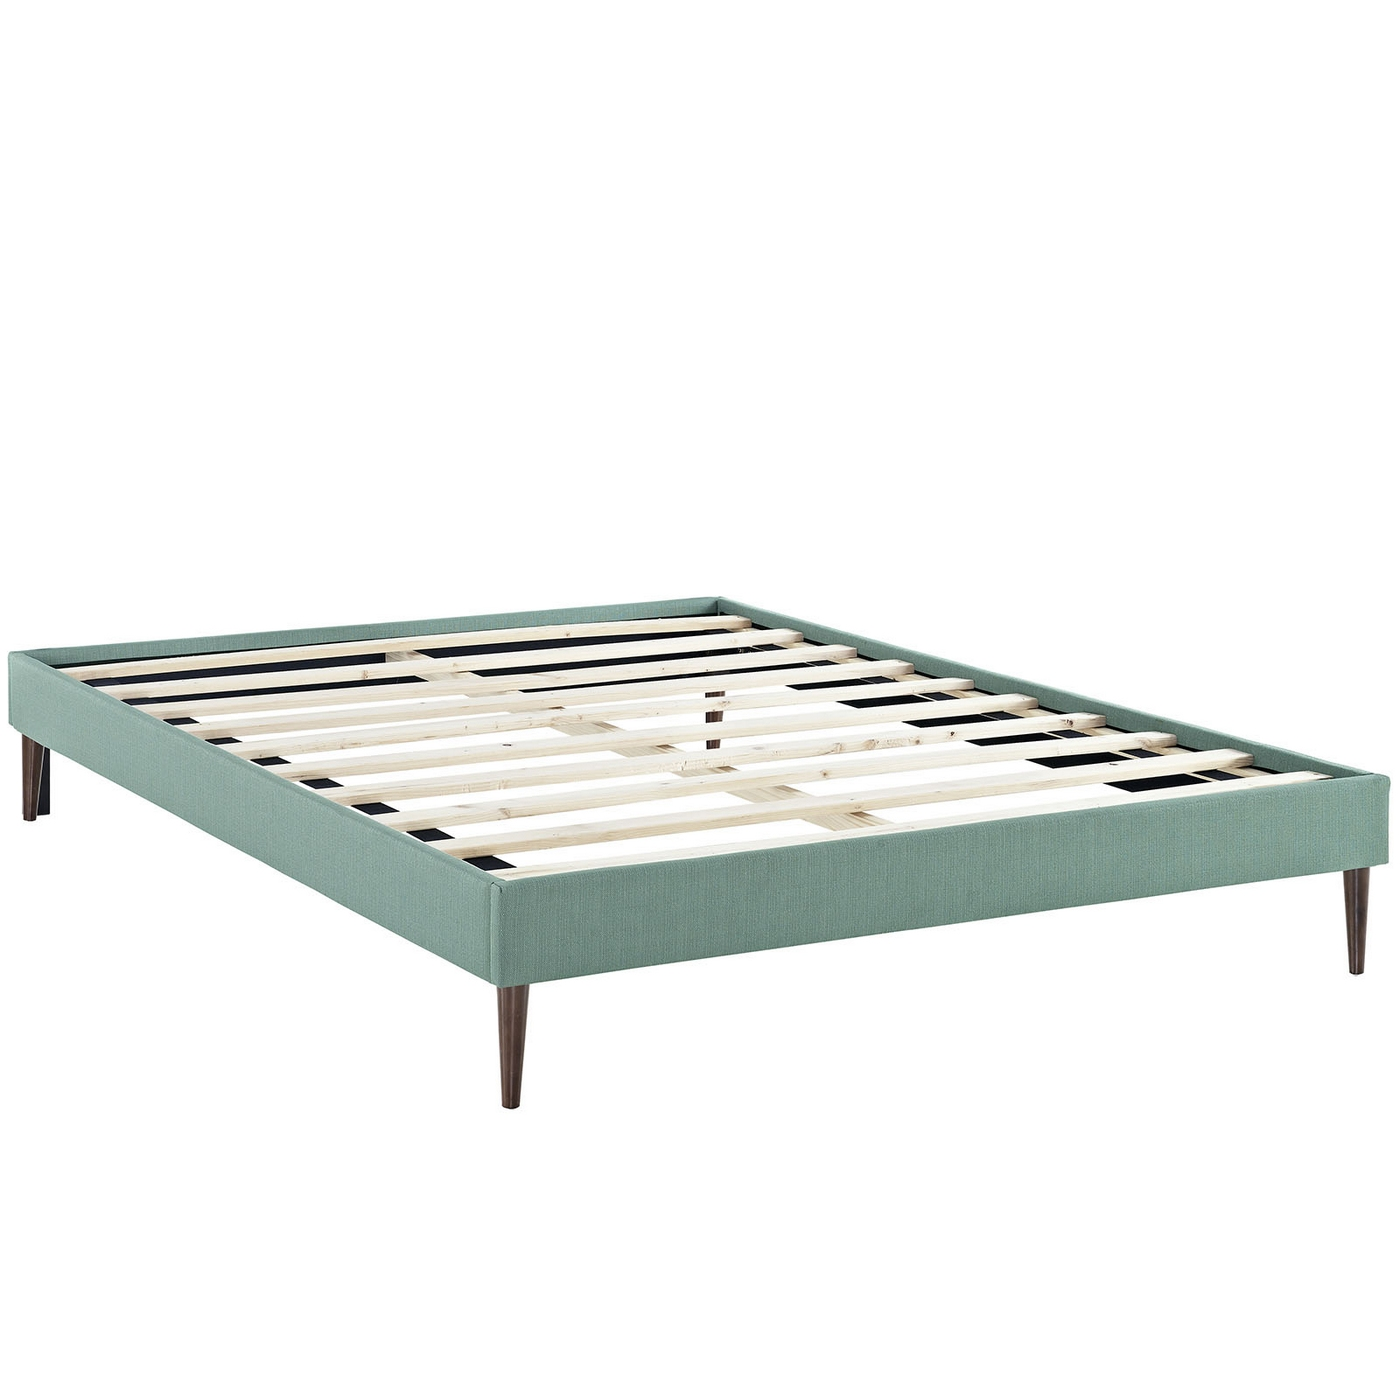 Sherry upholstered fabric queen platform bed frame laguna for Upholstered platform bed frame